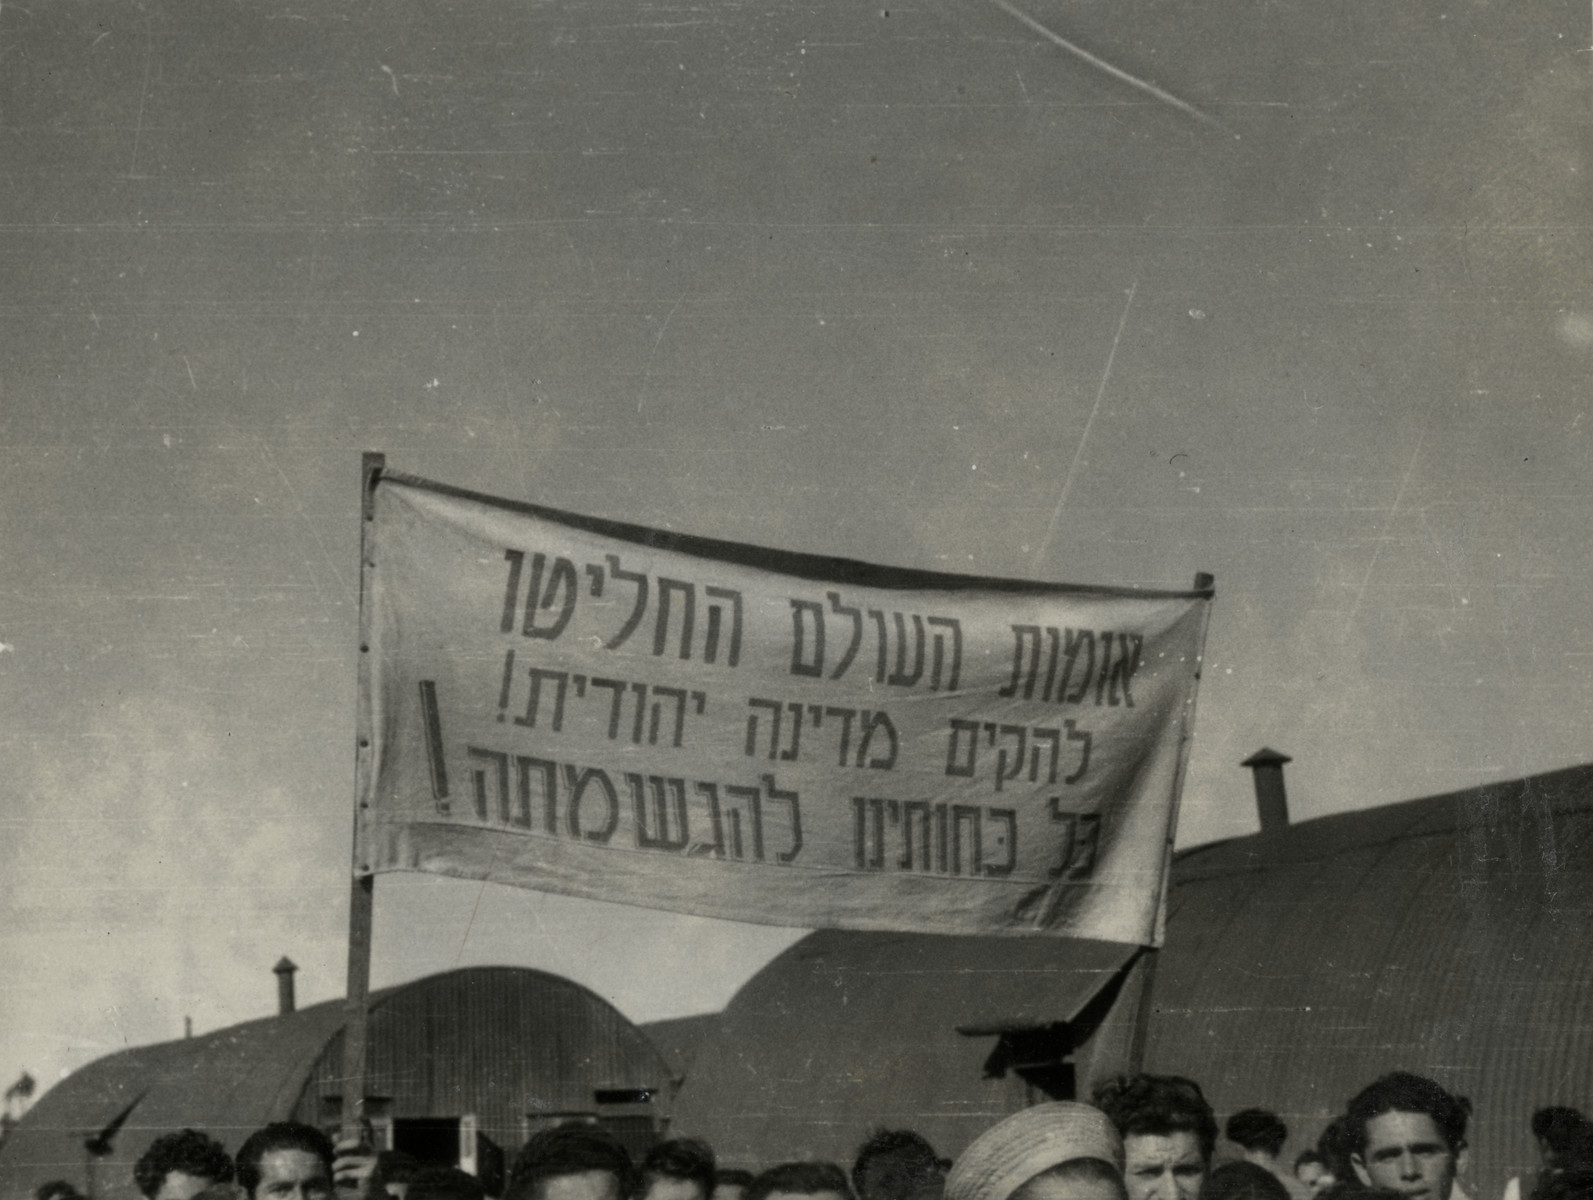 """Refugees in Cyprus celebrate the United Nations Partition Plan for Palestine; the sign says that the U.N. decided to create a Jewish state.   The banner reads """"The nations of the world decided to establish a Jewish State.  All our strength is for fulfilling it!"""""""